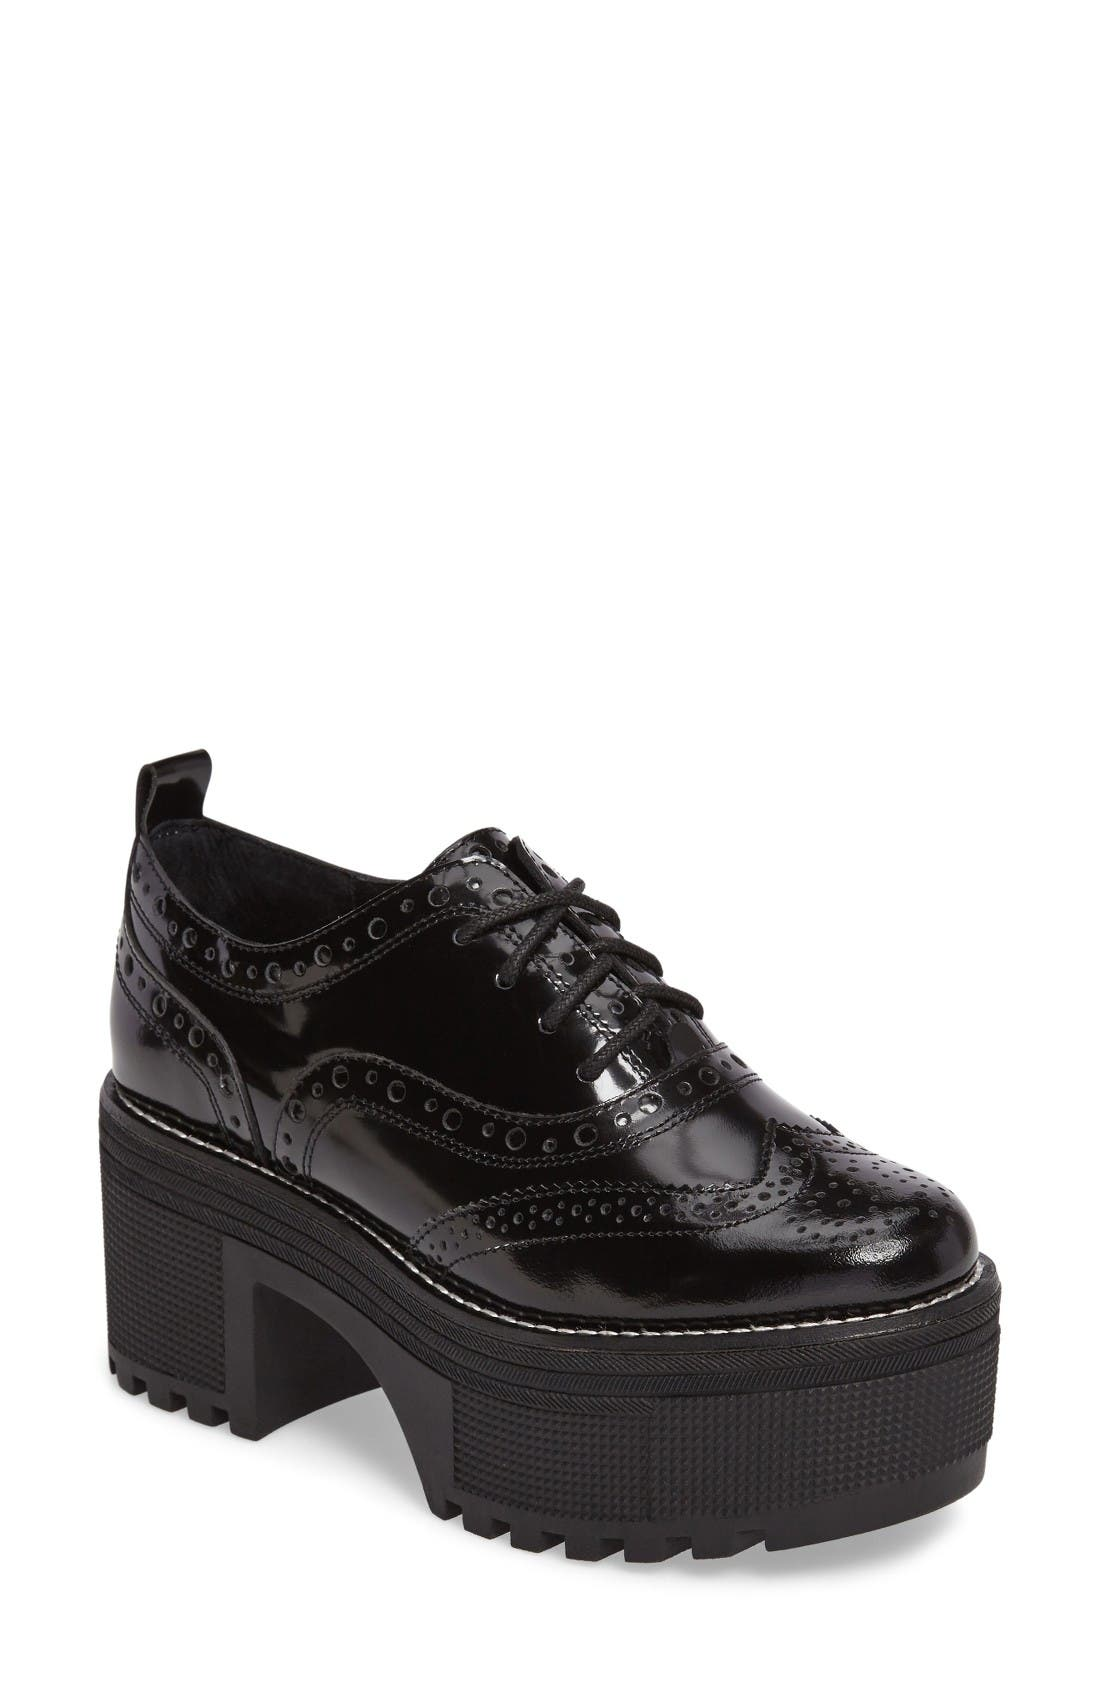 Alternate Image 1 Selected - Jeffrey Campbell Rudeboy Oxford (Women)